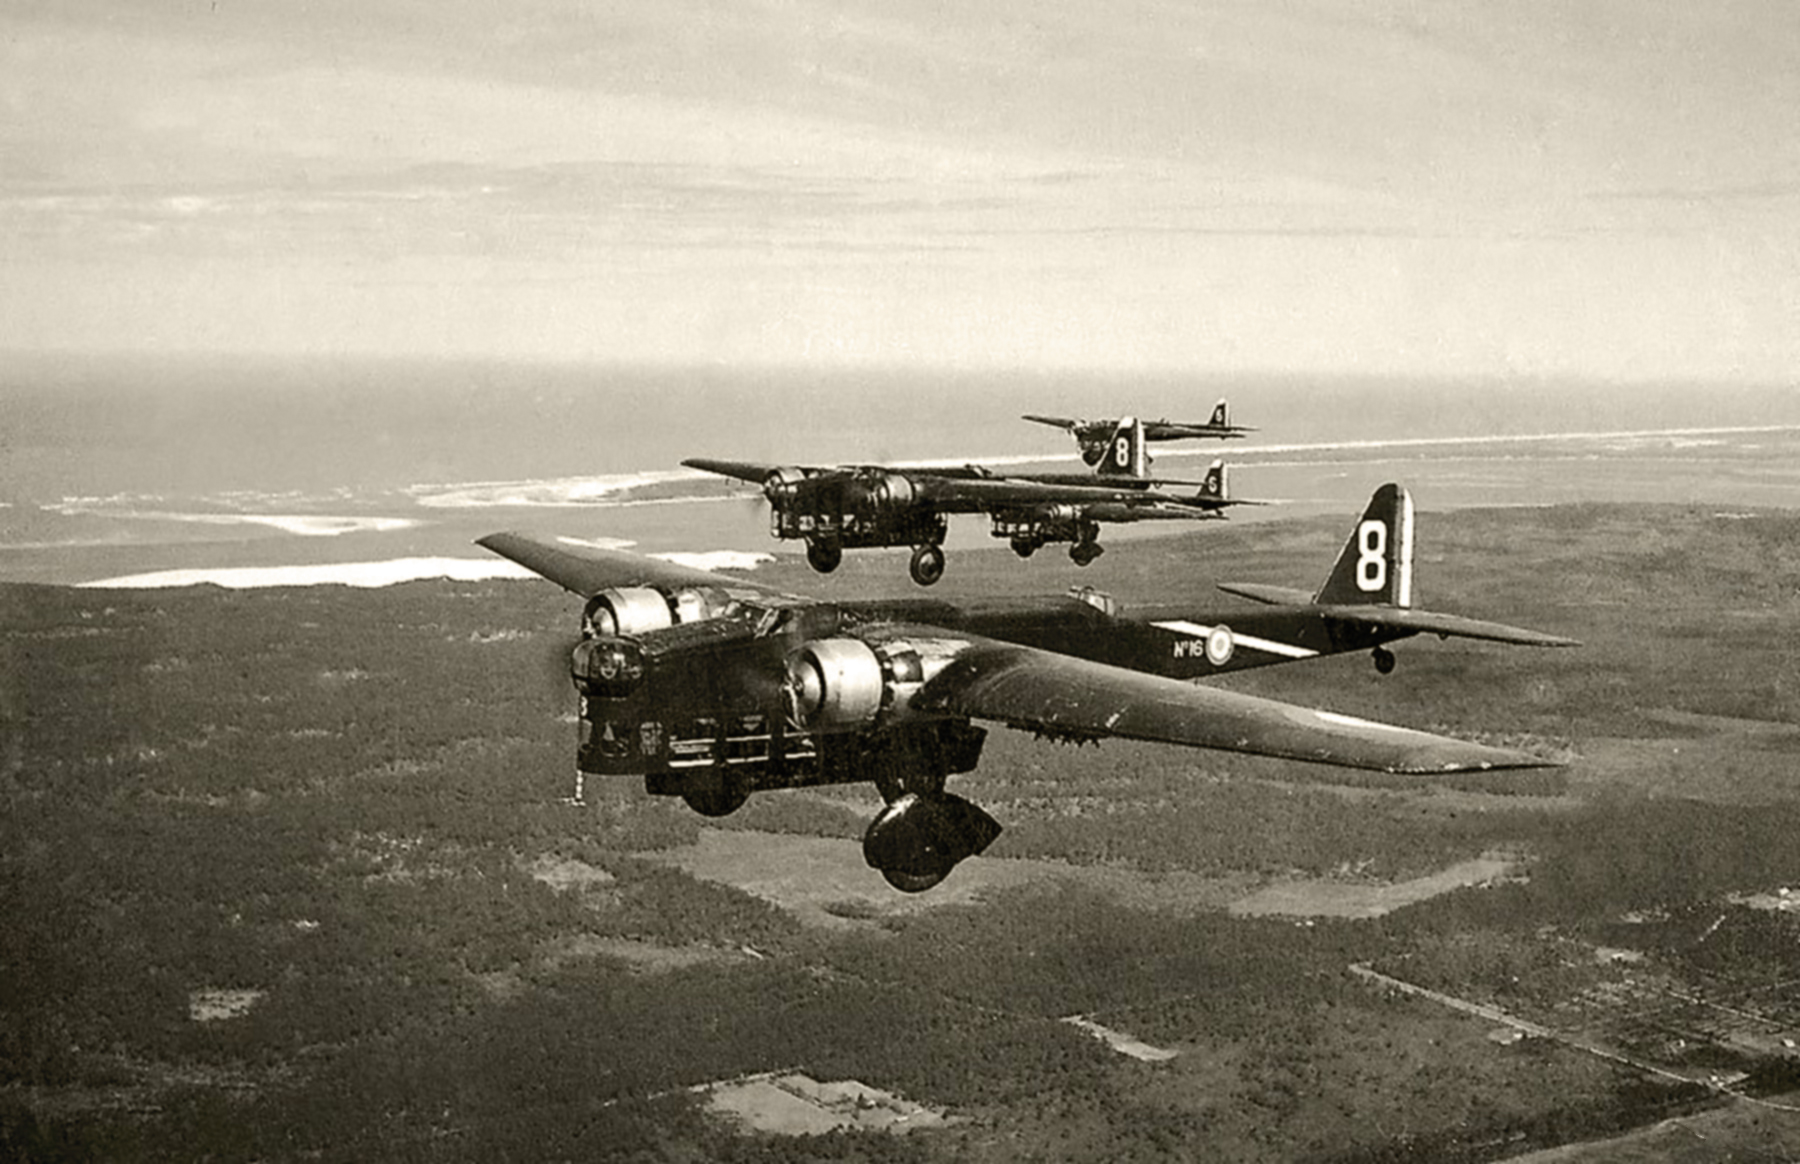 French Airforce Amiot 143 No16 in formation over the French coast 01